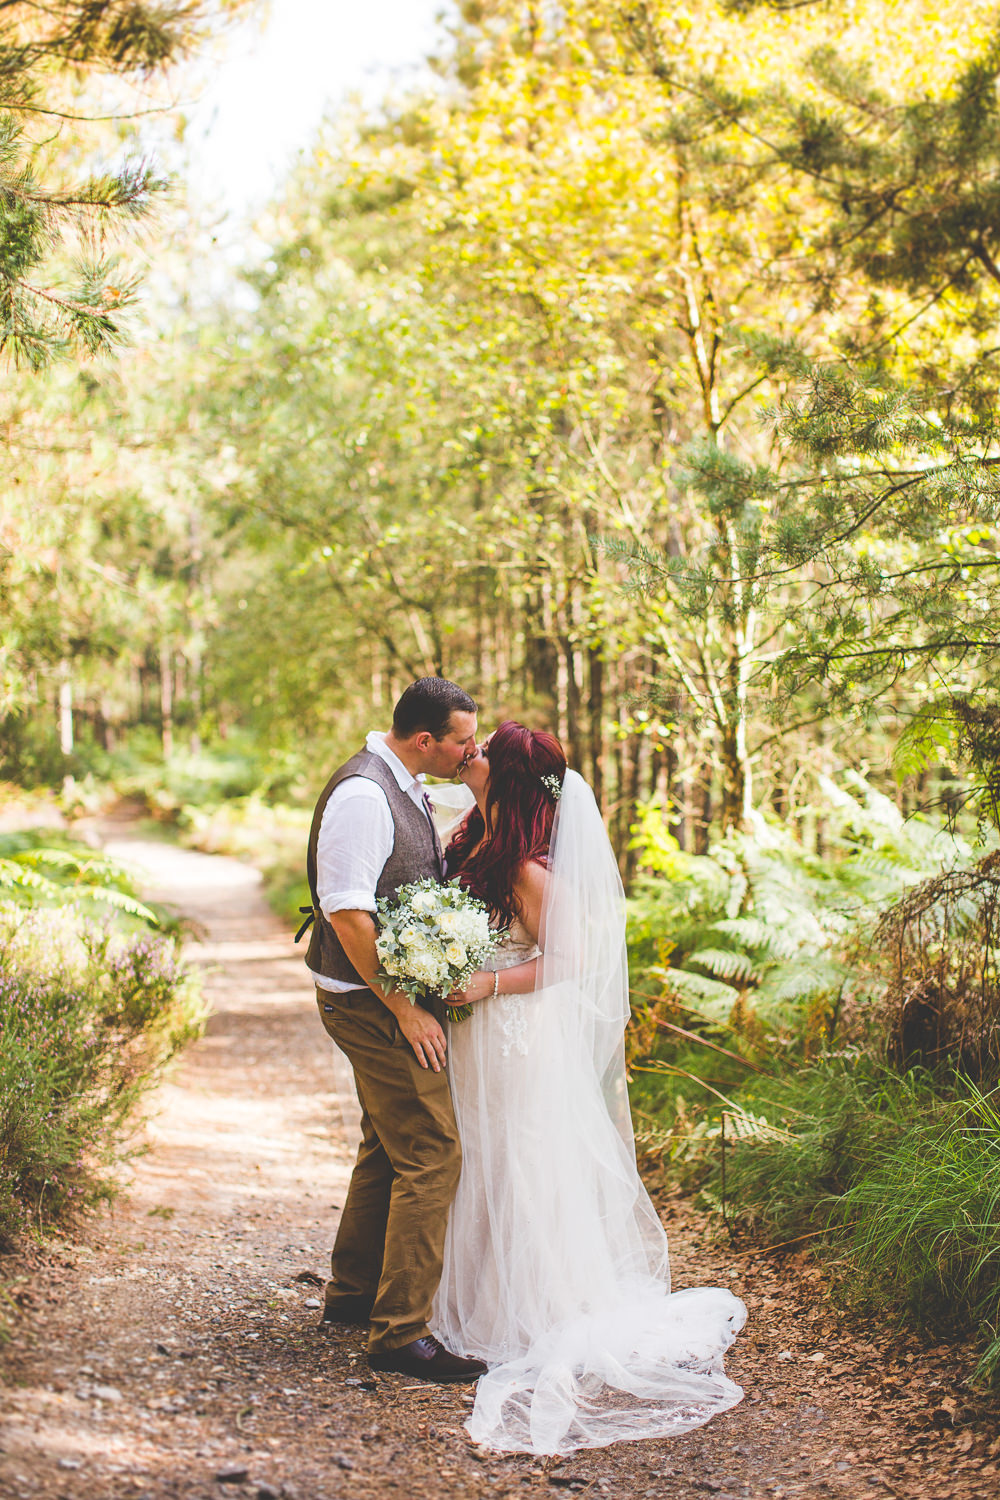 Bride Bridal Wed2B Dress Gown Sleeveless Overlay Veil Tweed Waistcoat Chinos Groom White Flower Bouquet Moors Valley Country Park Wedding Livvy Hukins Photography